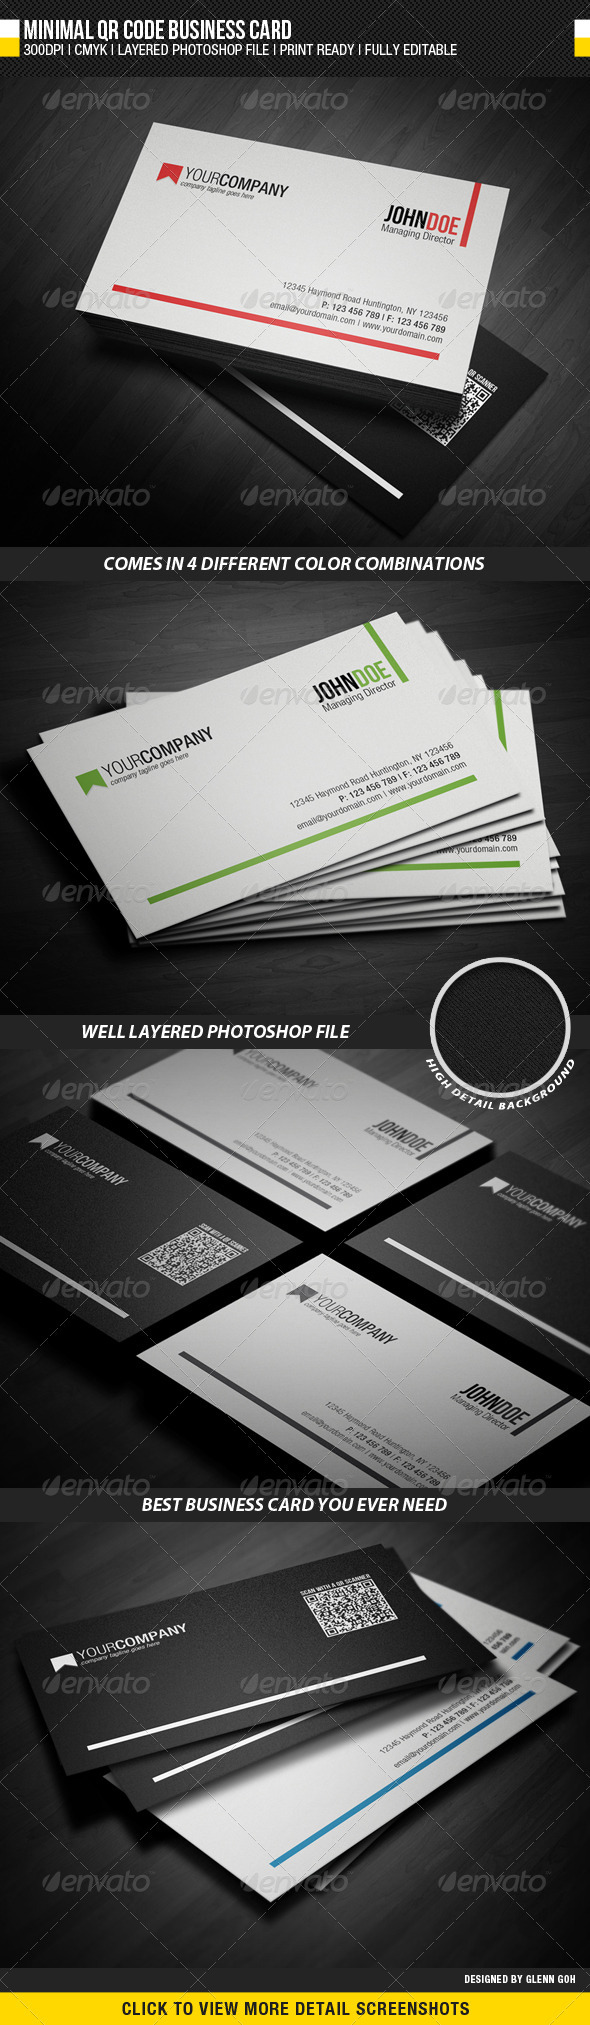 Minimal QR Code Business Card - Corporate Business Cards